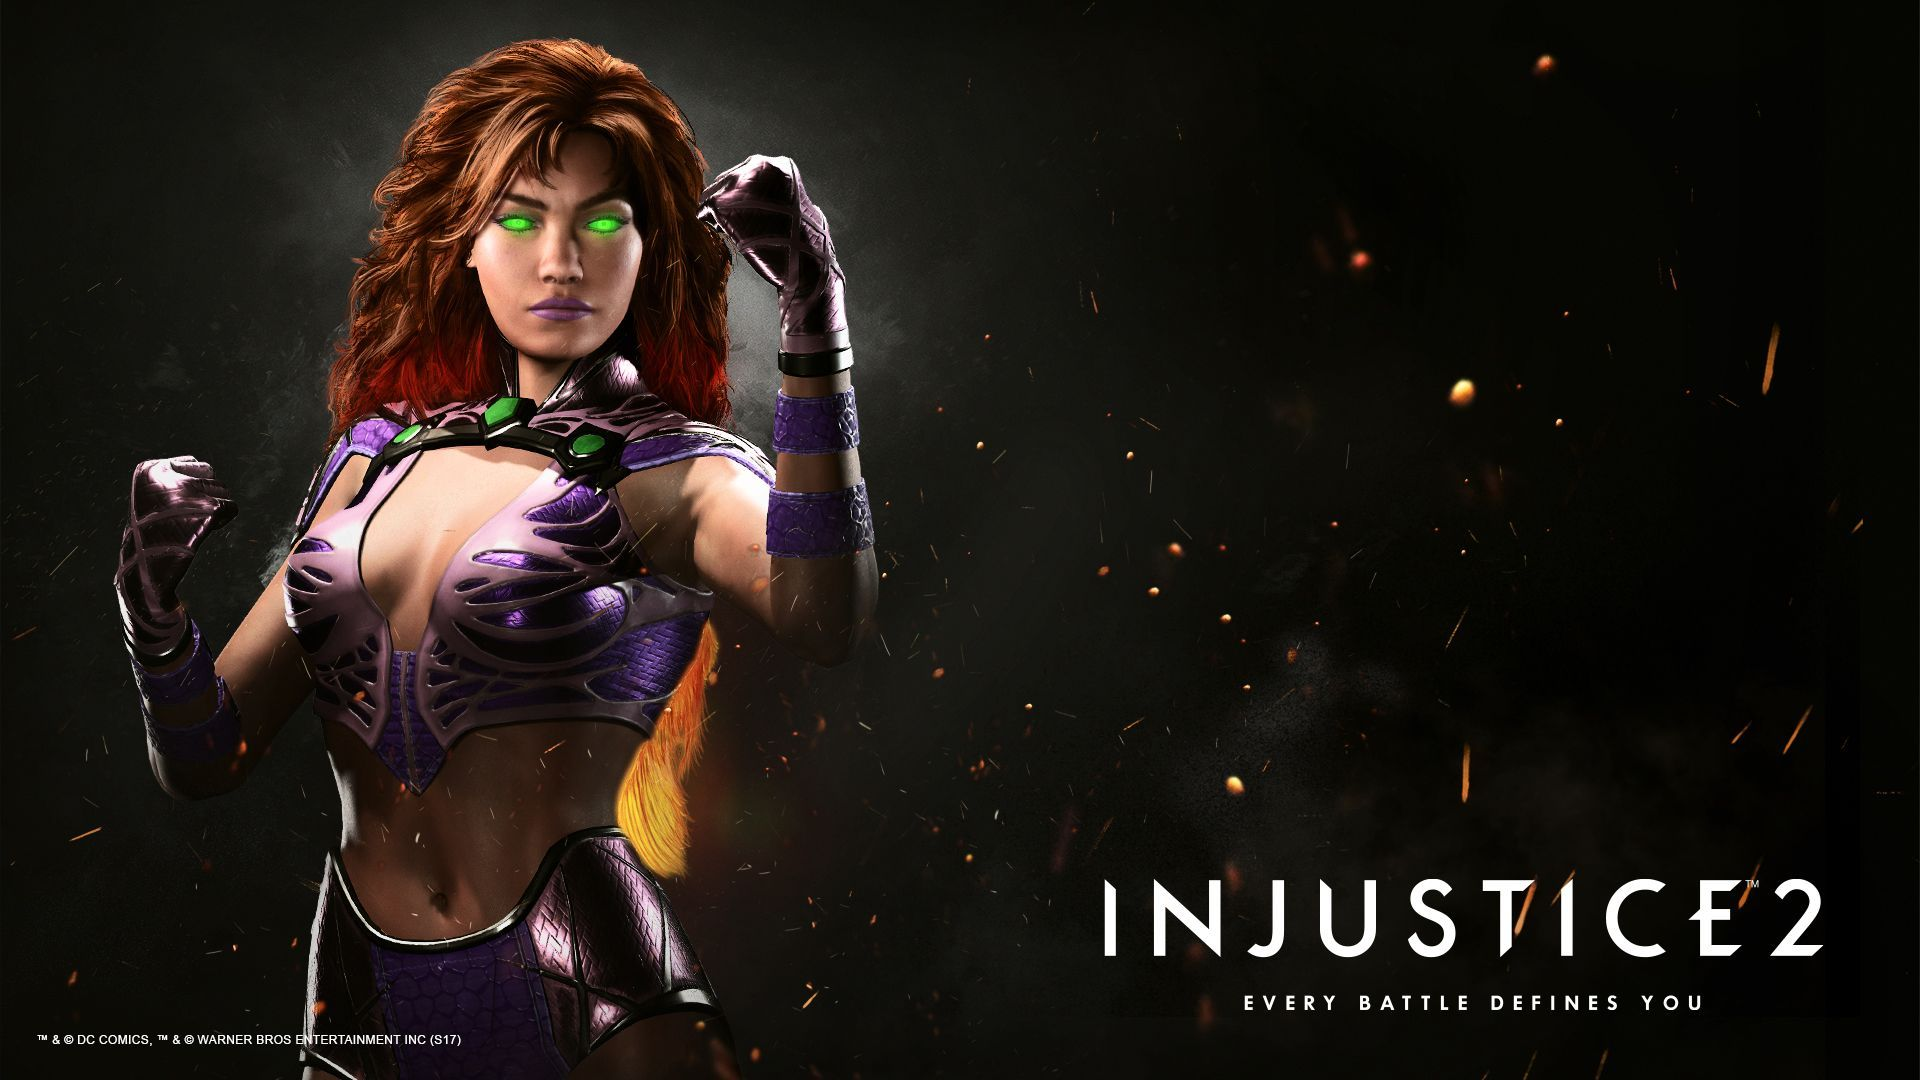 Harley Quinn Injustice 2 Wallpaper Posted By Ethan Simpson